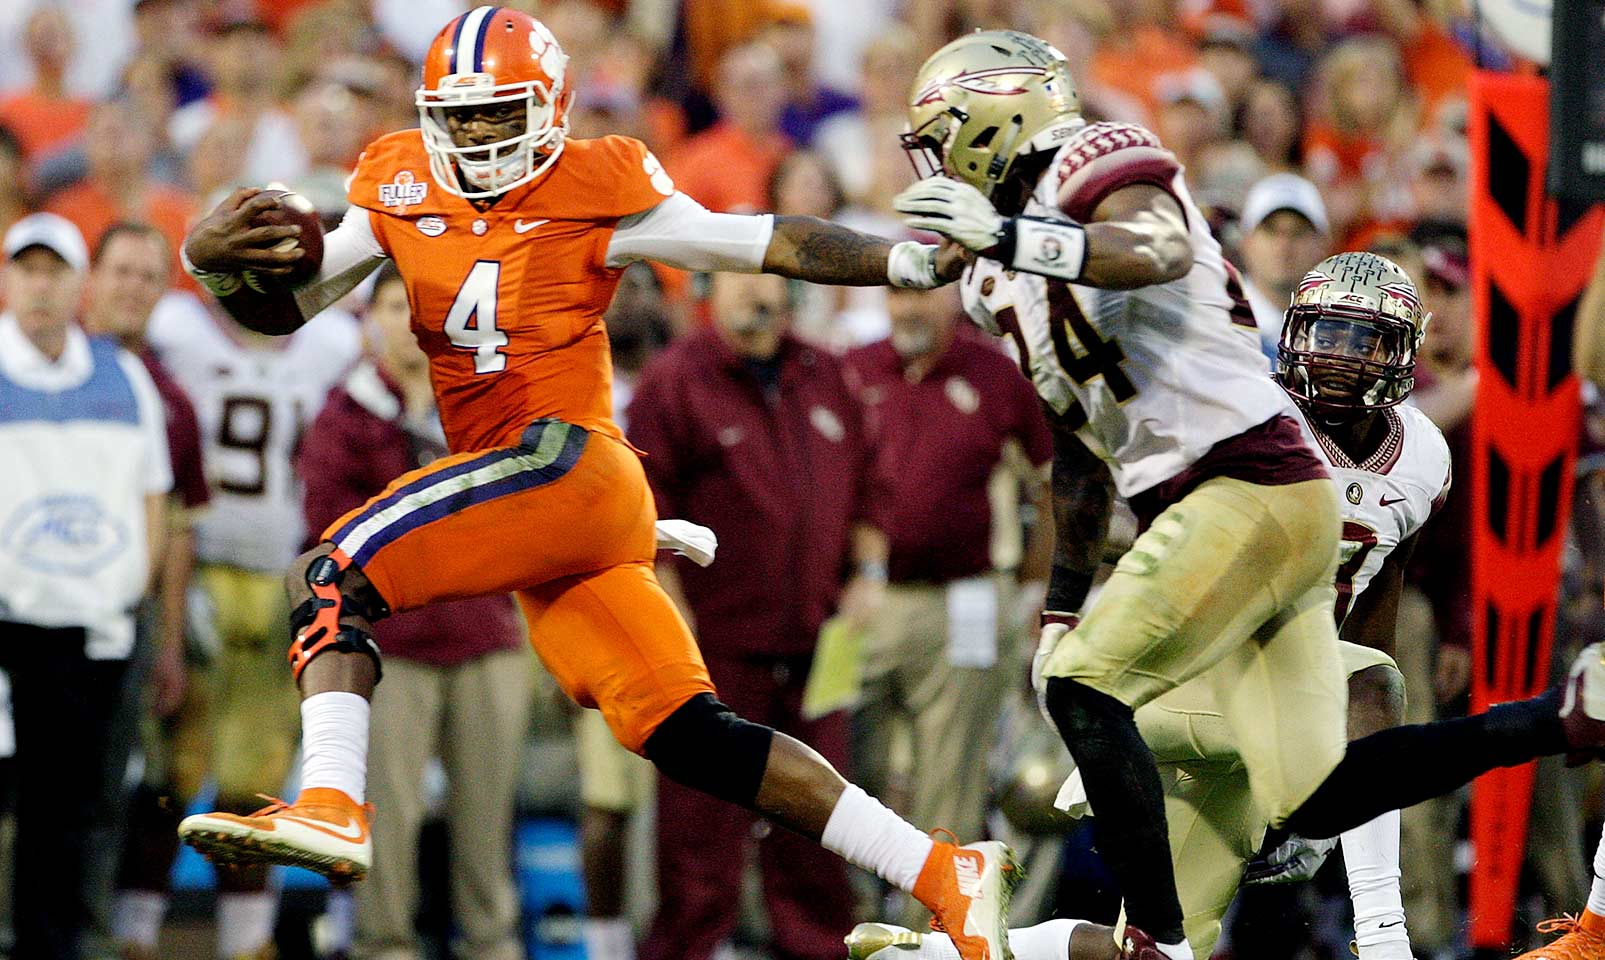 Clemson 23, Florida State 13: In their first game ranked No. 1, the Tigers overpowered the Seminoles, wearing them down with over 100 yards rushing from both Deshaun Watson and Wayne Gallman. After a 75-yard touchdown run from Dalvin Cook on the second play from scrimmage, Florida State never reached the end zone again.